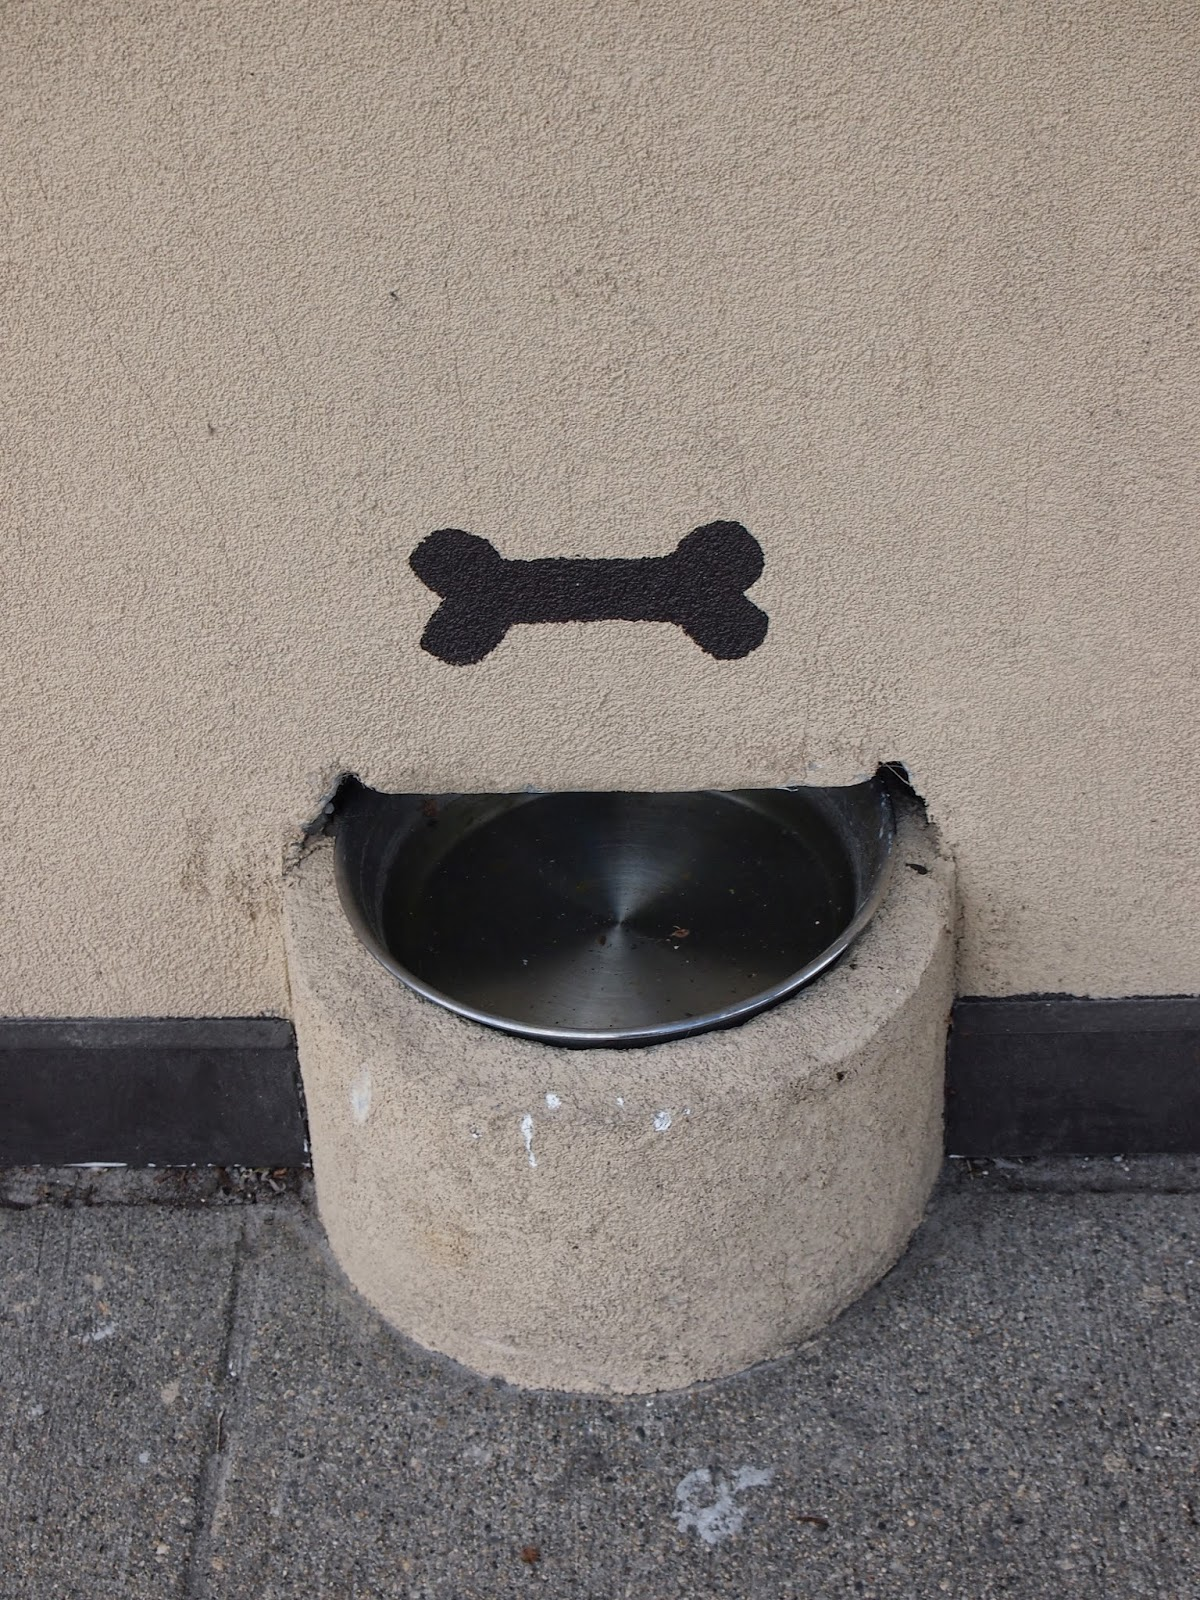 dog bowls for east greenwich